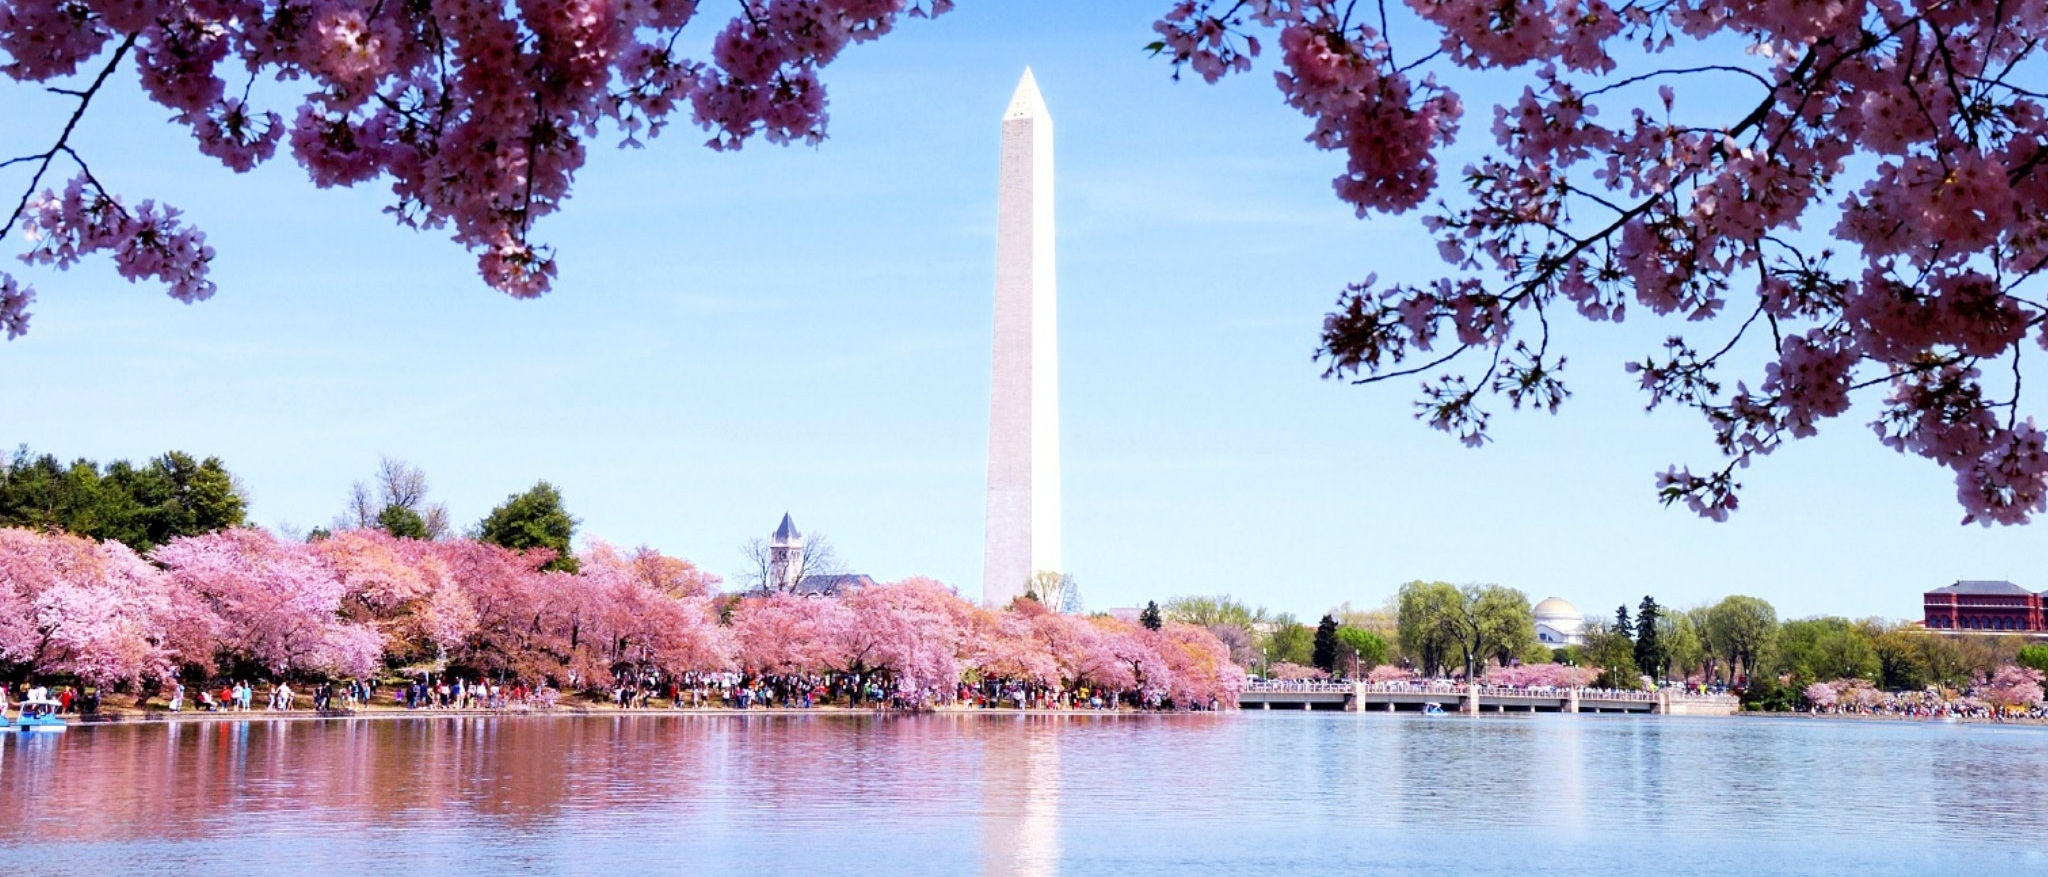 Sheraton Tysons Hotel - Cherry Blossoms and The Washington Monument